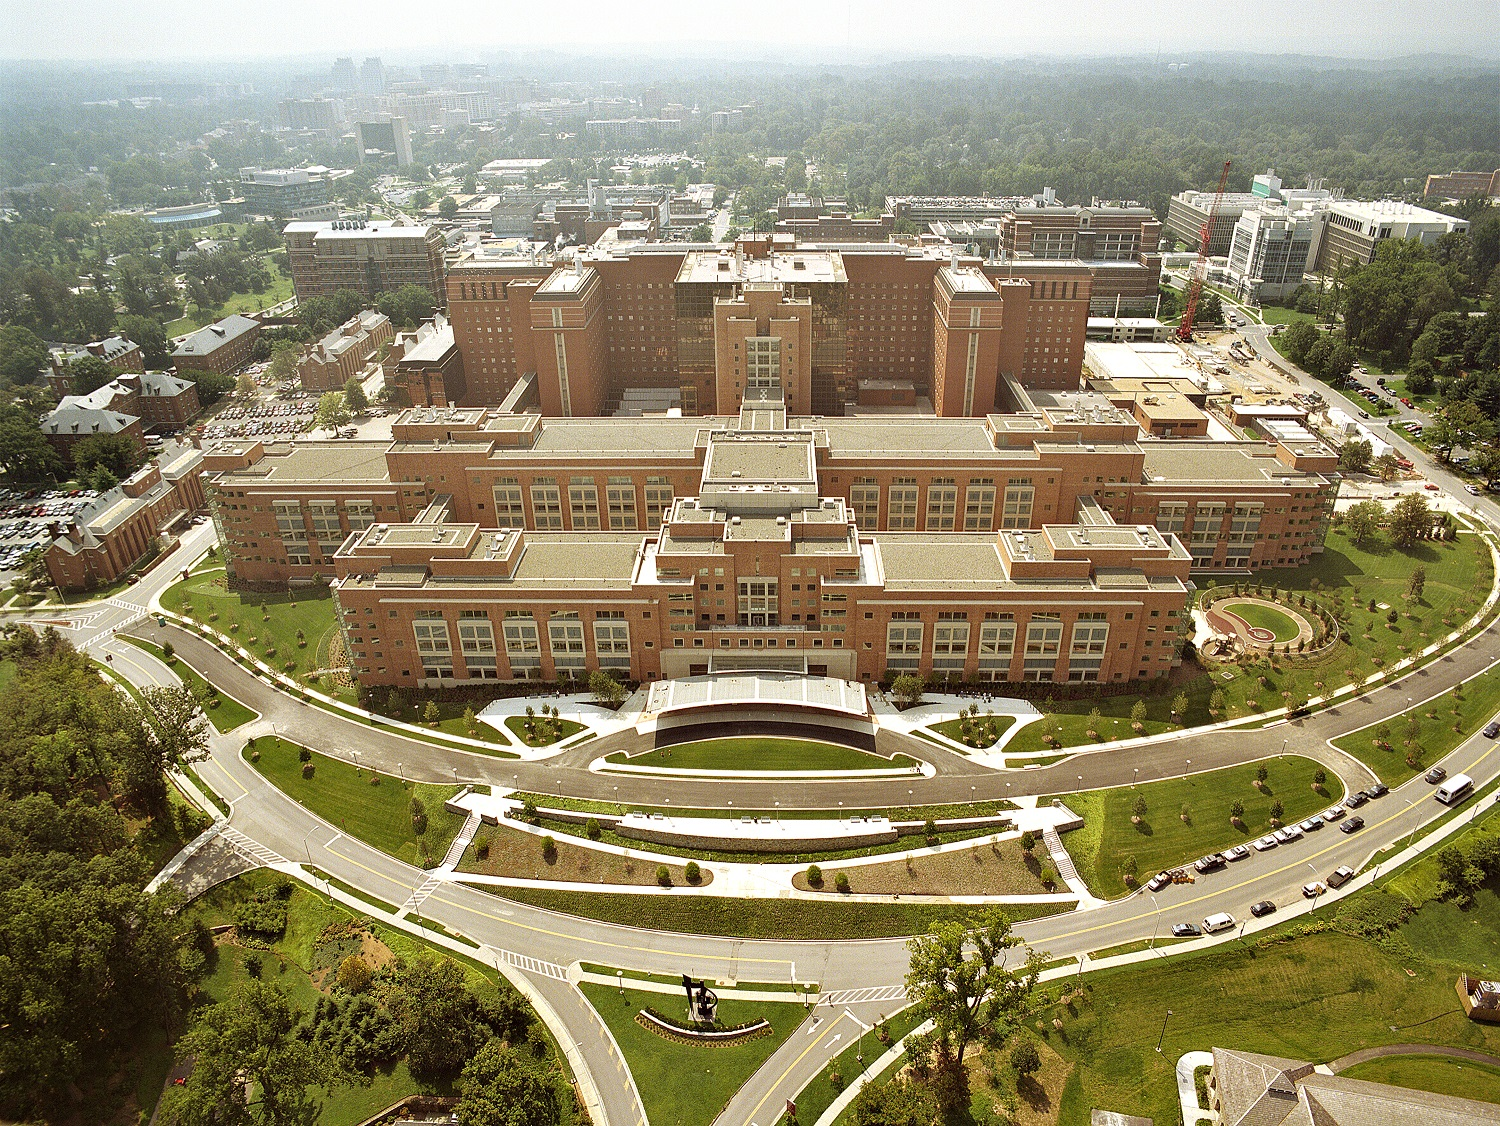 Aerial view of the NIH Clinical Center. Image courtesy of the NIH Clinical Center